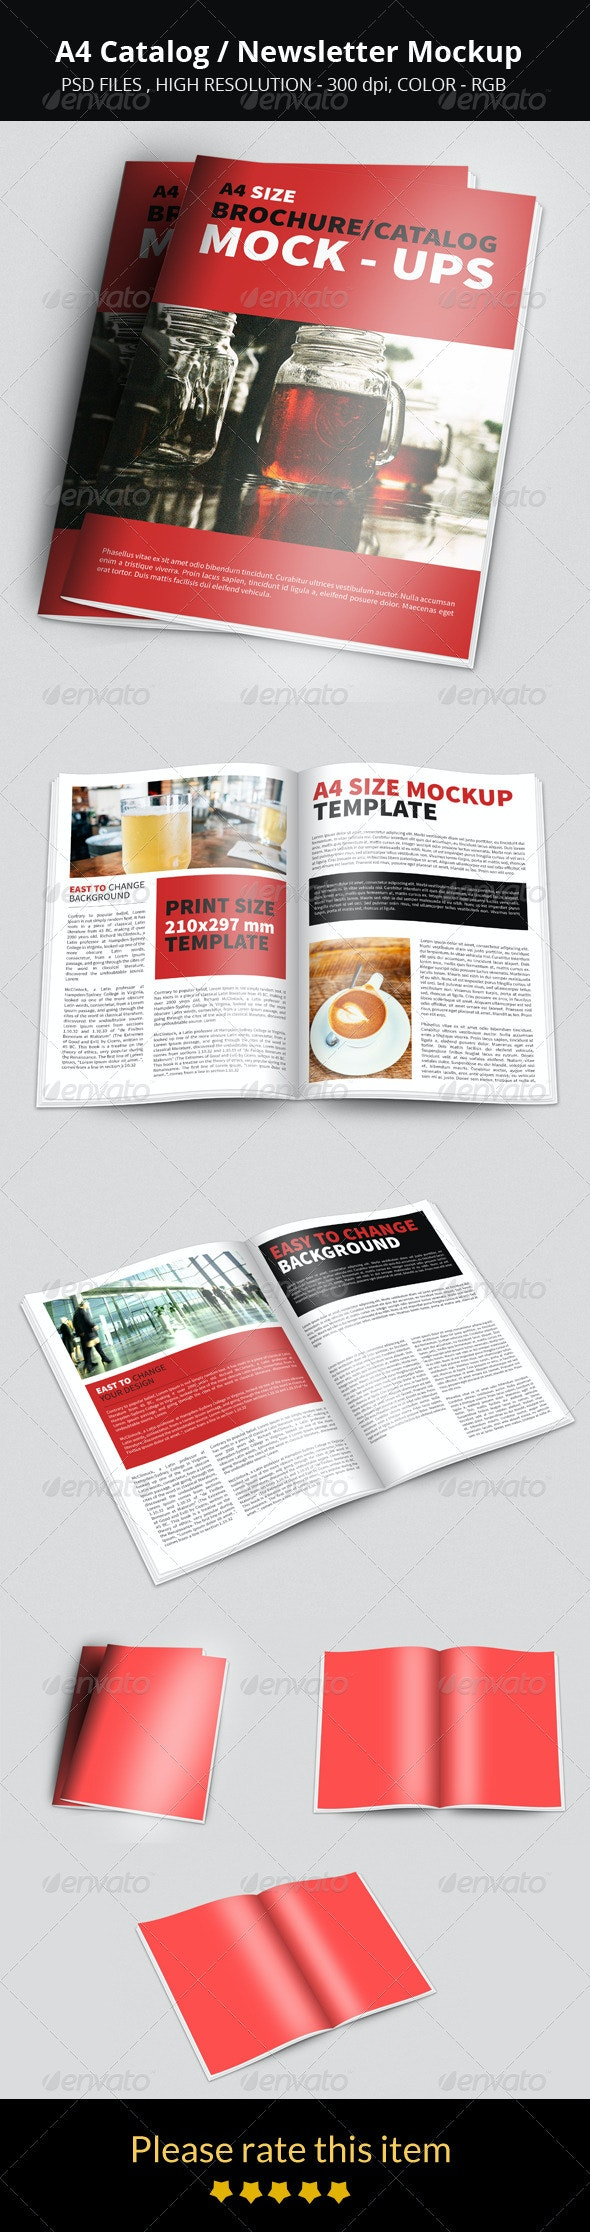 A4 Catalog/Newsletter Mockup - Product Mock-Ups Graphics